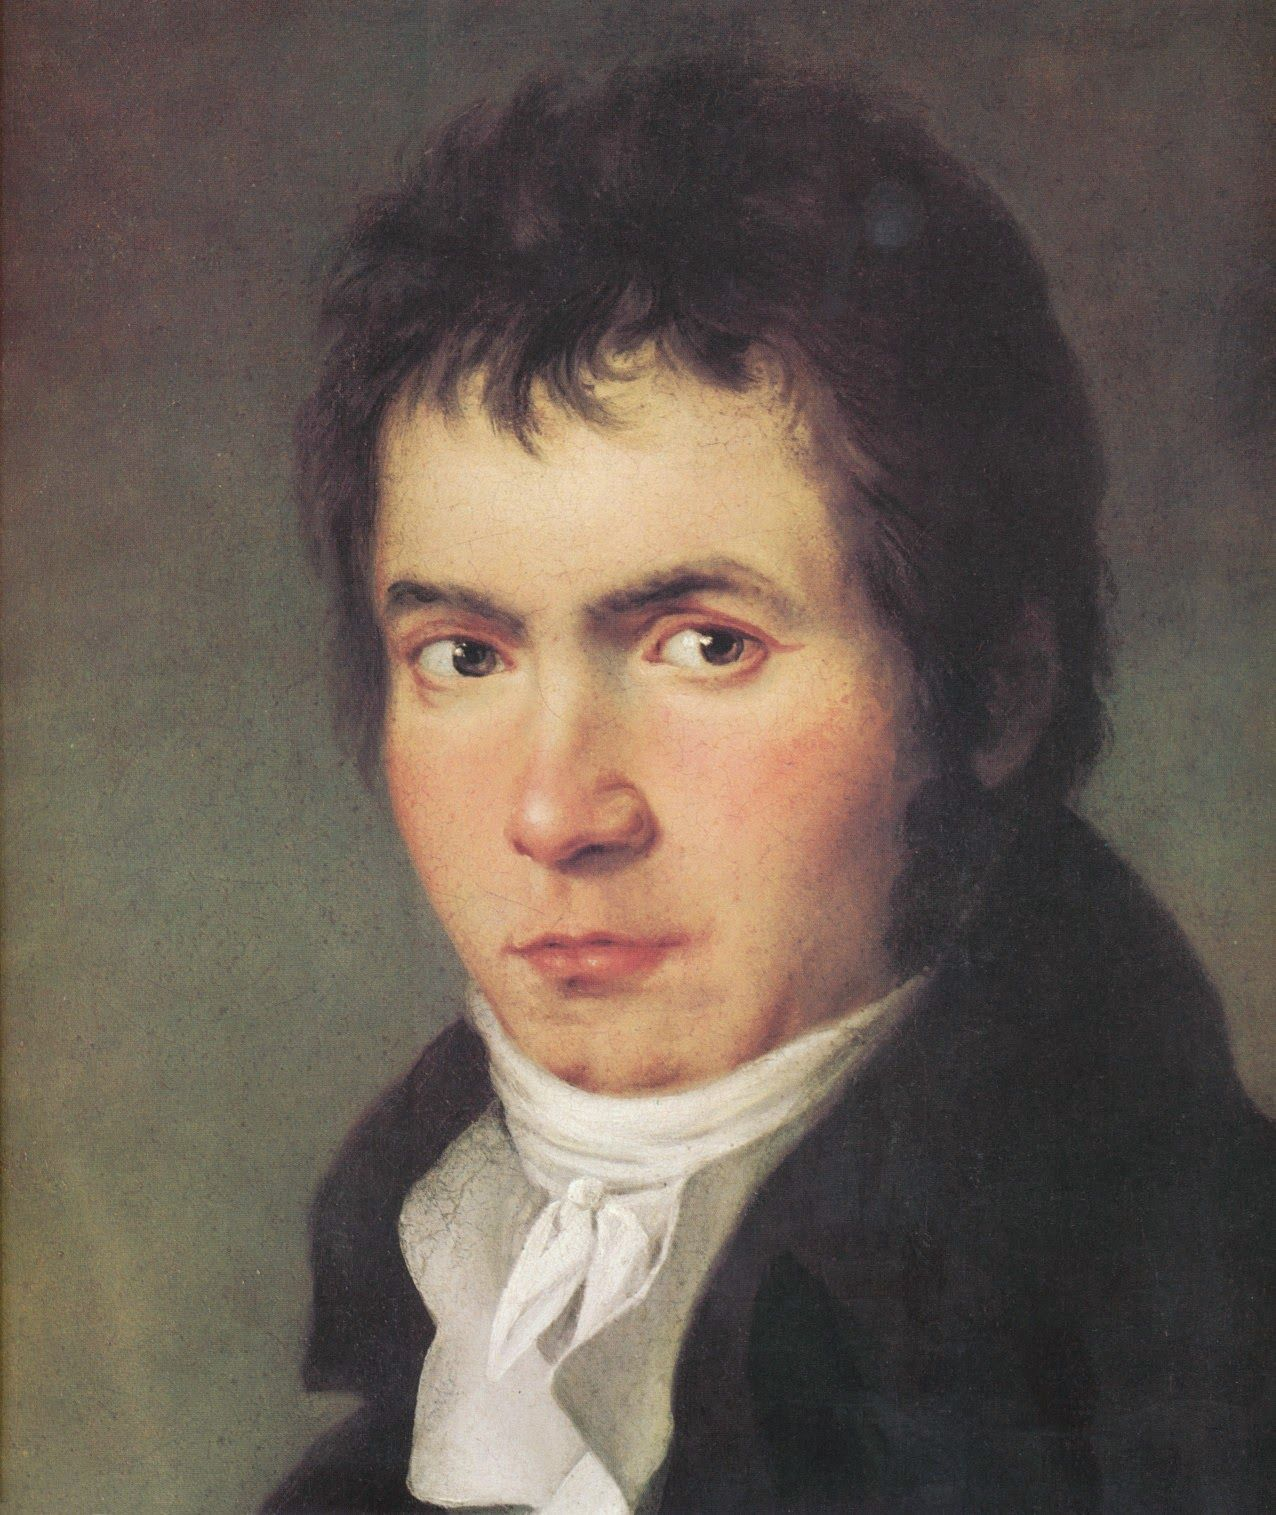 Musiclassical Notes Beethoven Symphony No 5 In C Op 67 Re Menor